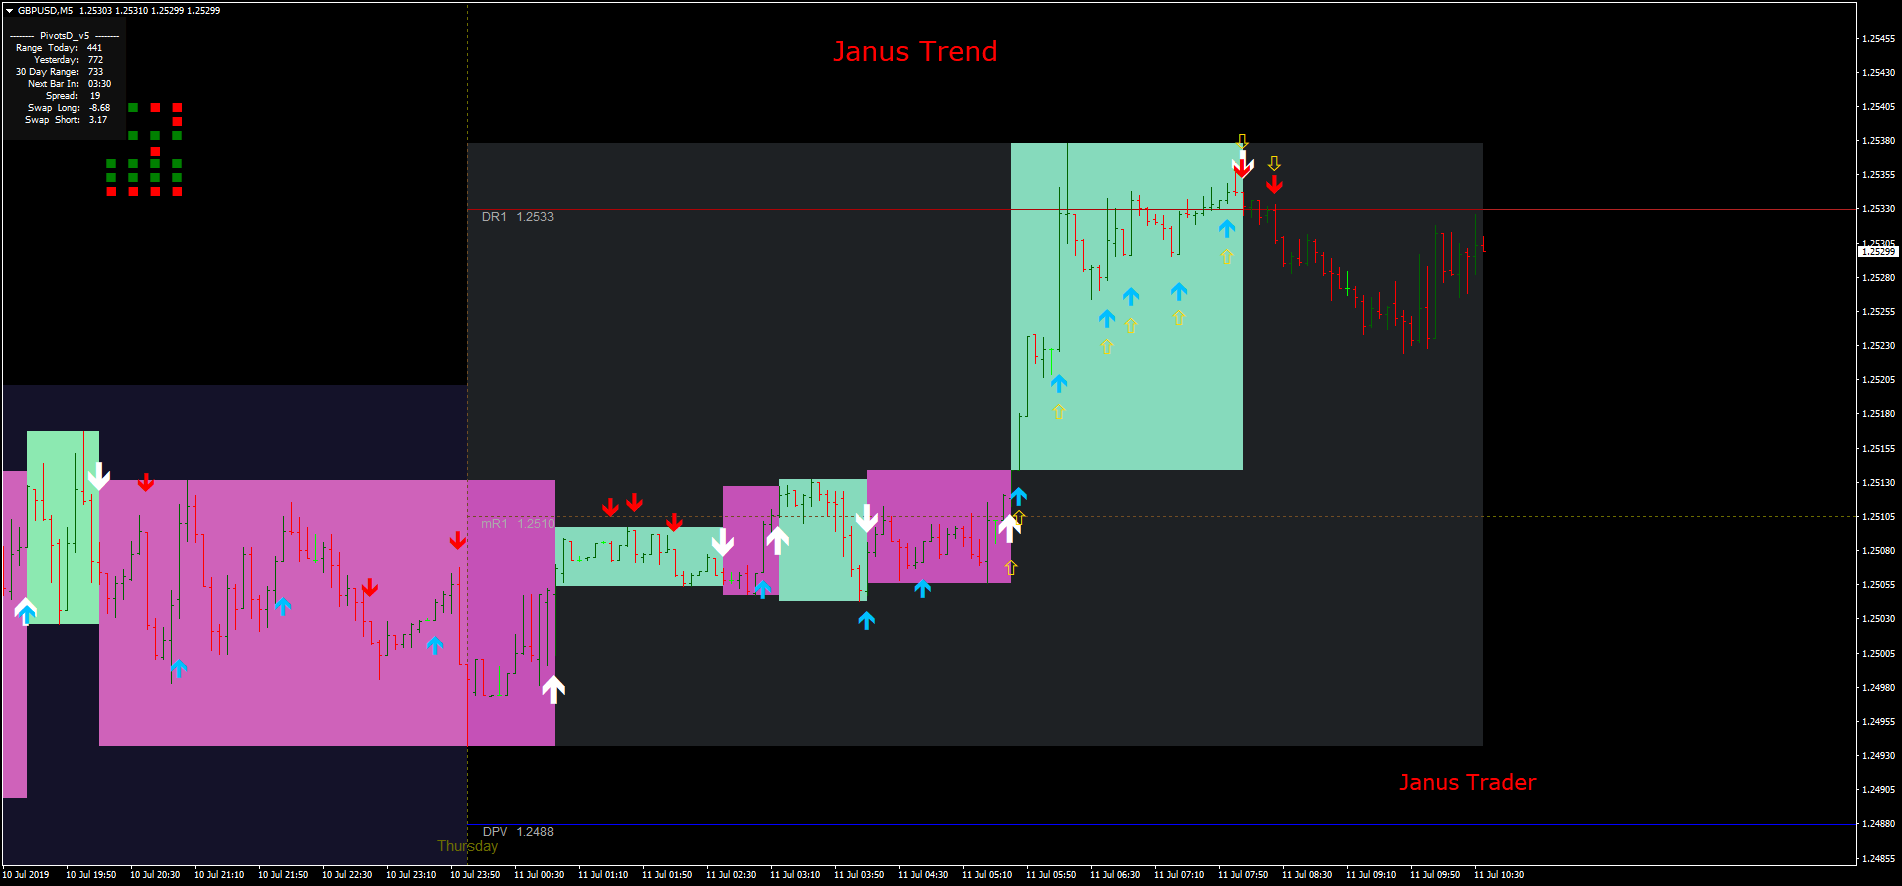 Janus Trend Strategy Forex Strategies Forex Resources Forex Trading Free Forex Trading Signals And Fx Forecast